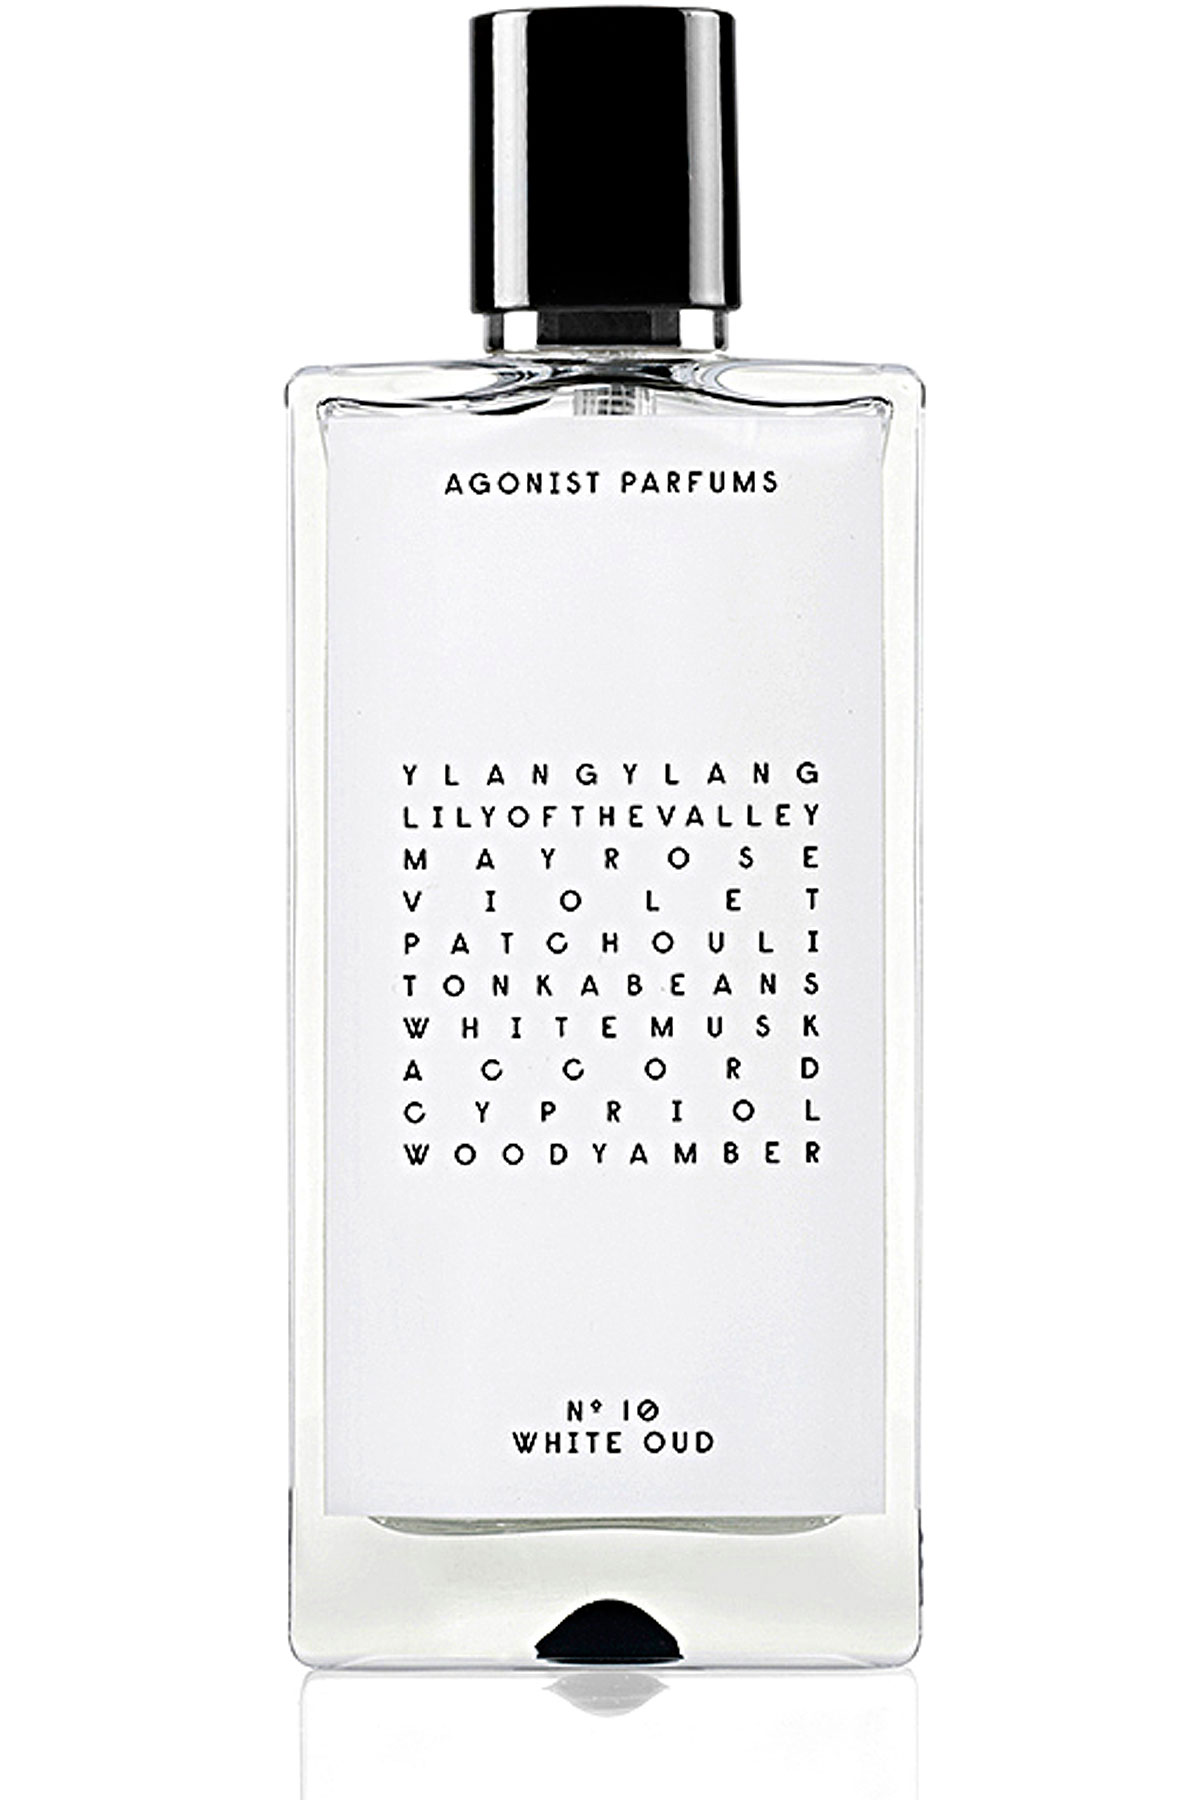 Agonist Fragrances for Men, No 10 White Oud - Eau De Parfum - 50 Ml, 2019, 50 ml